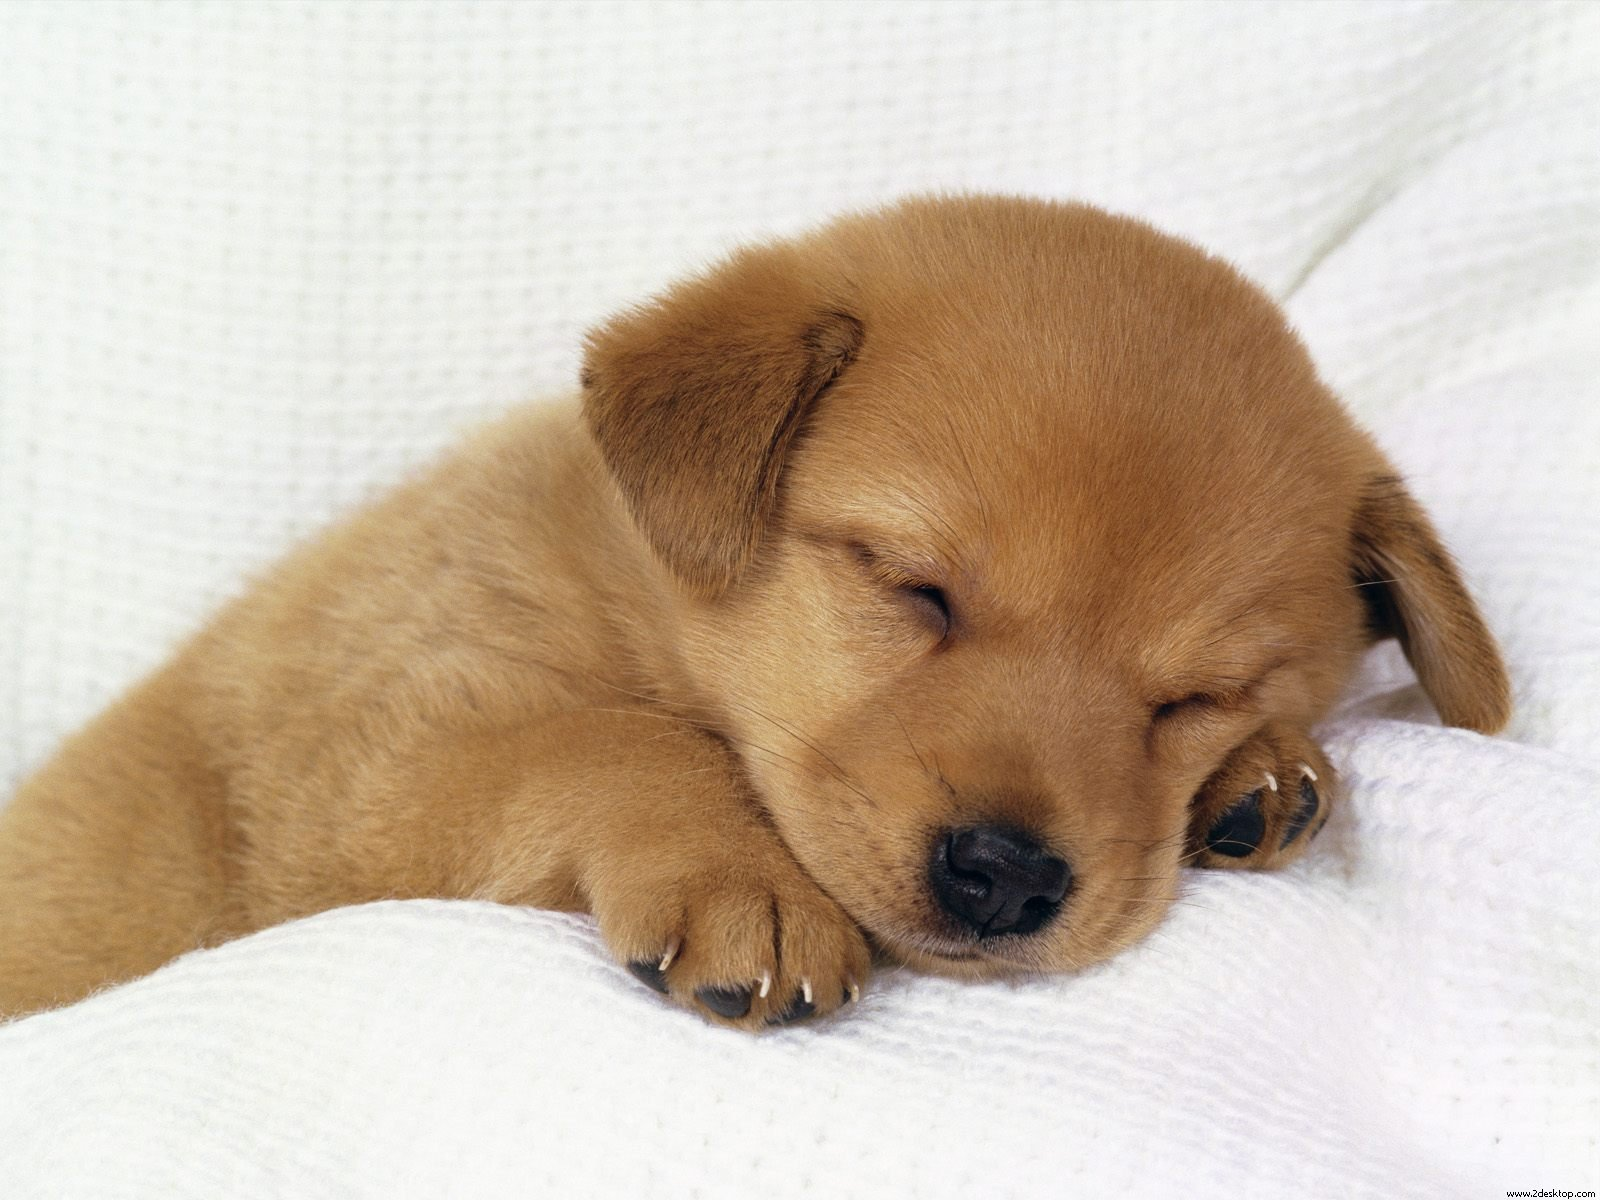 Puppy Backgrounds on Wallpapers Vista